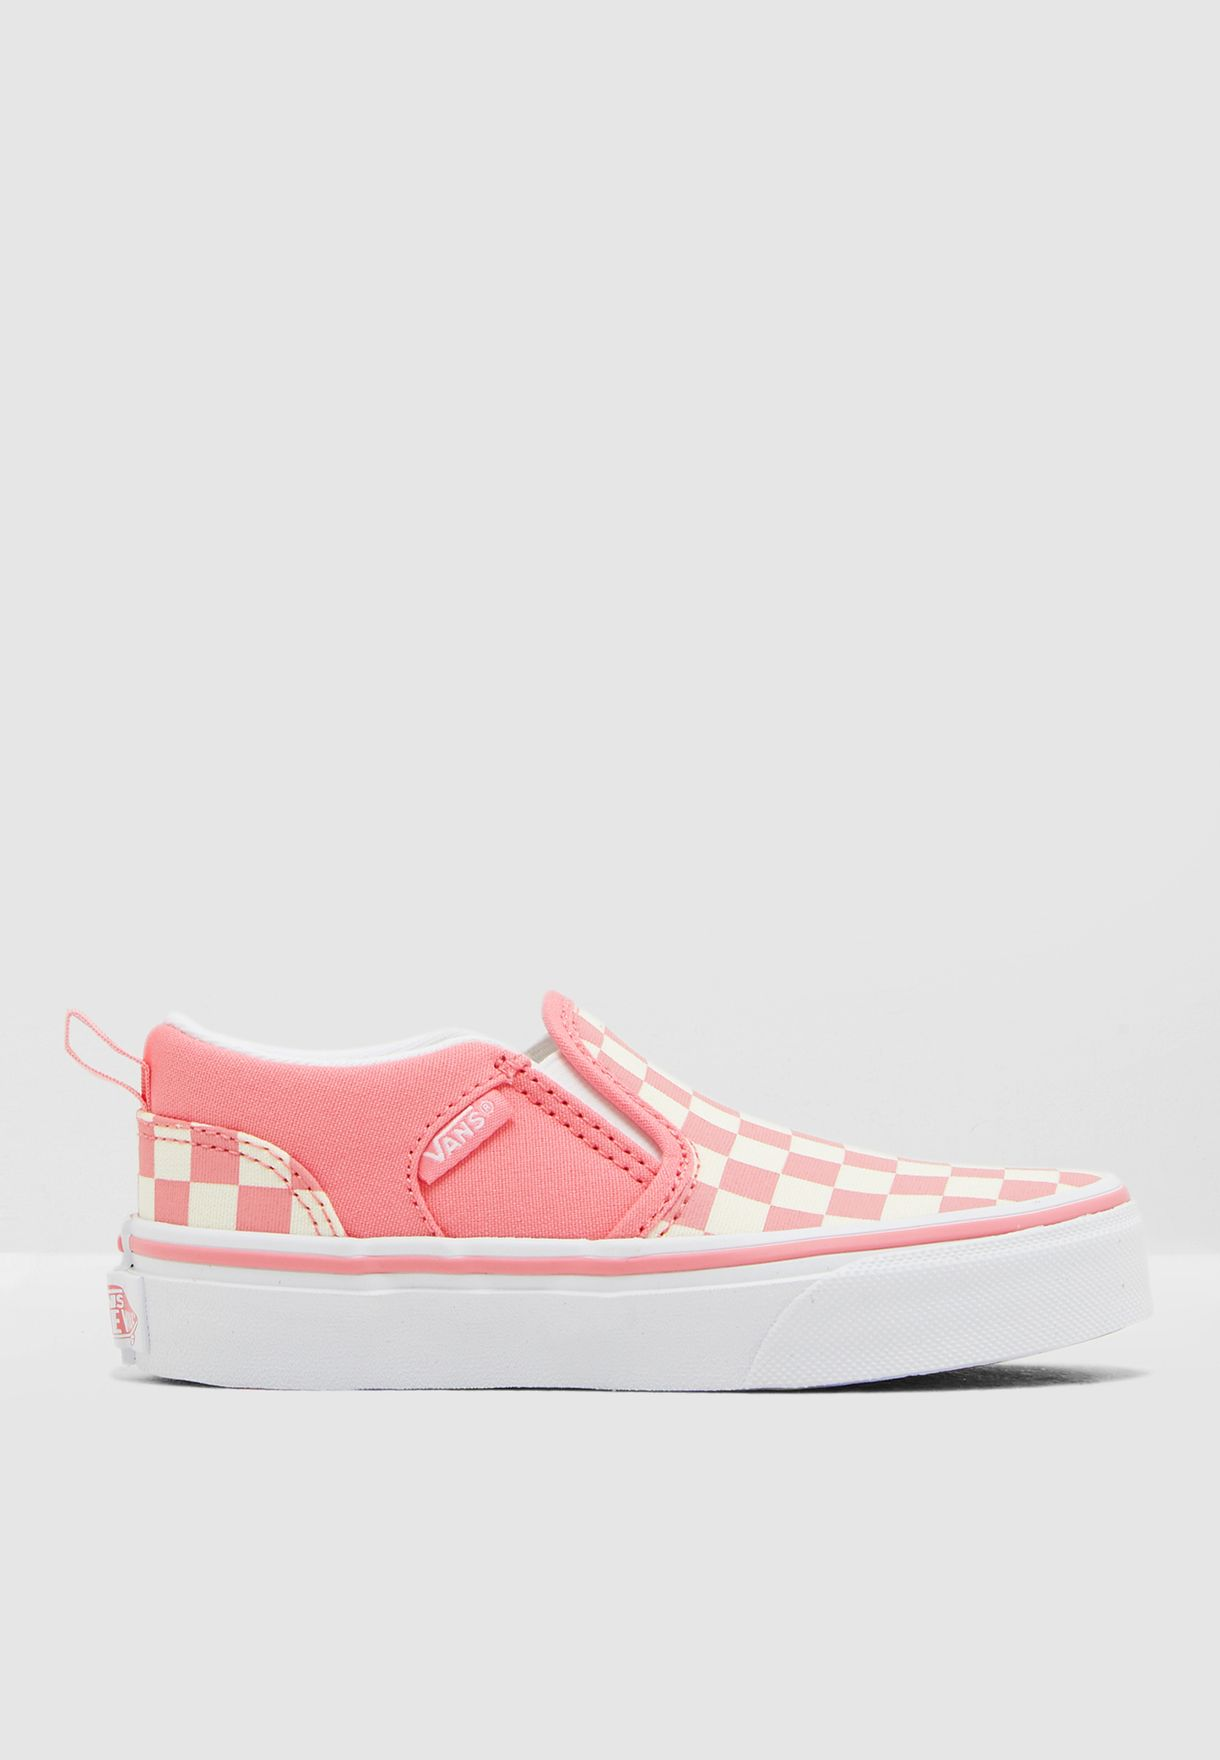 f2681d25b9 Shop Vans pink Kids Checkerboard My Asher 8DSVHK for Kids in UAE ...